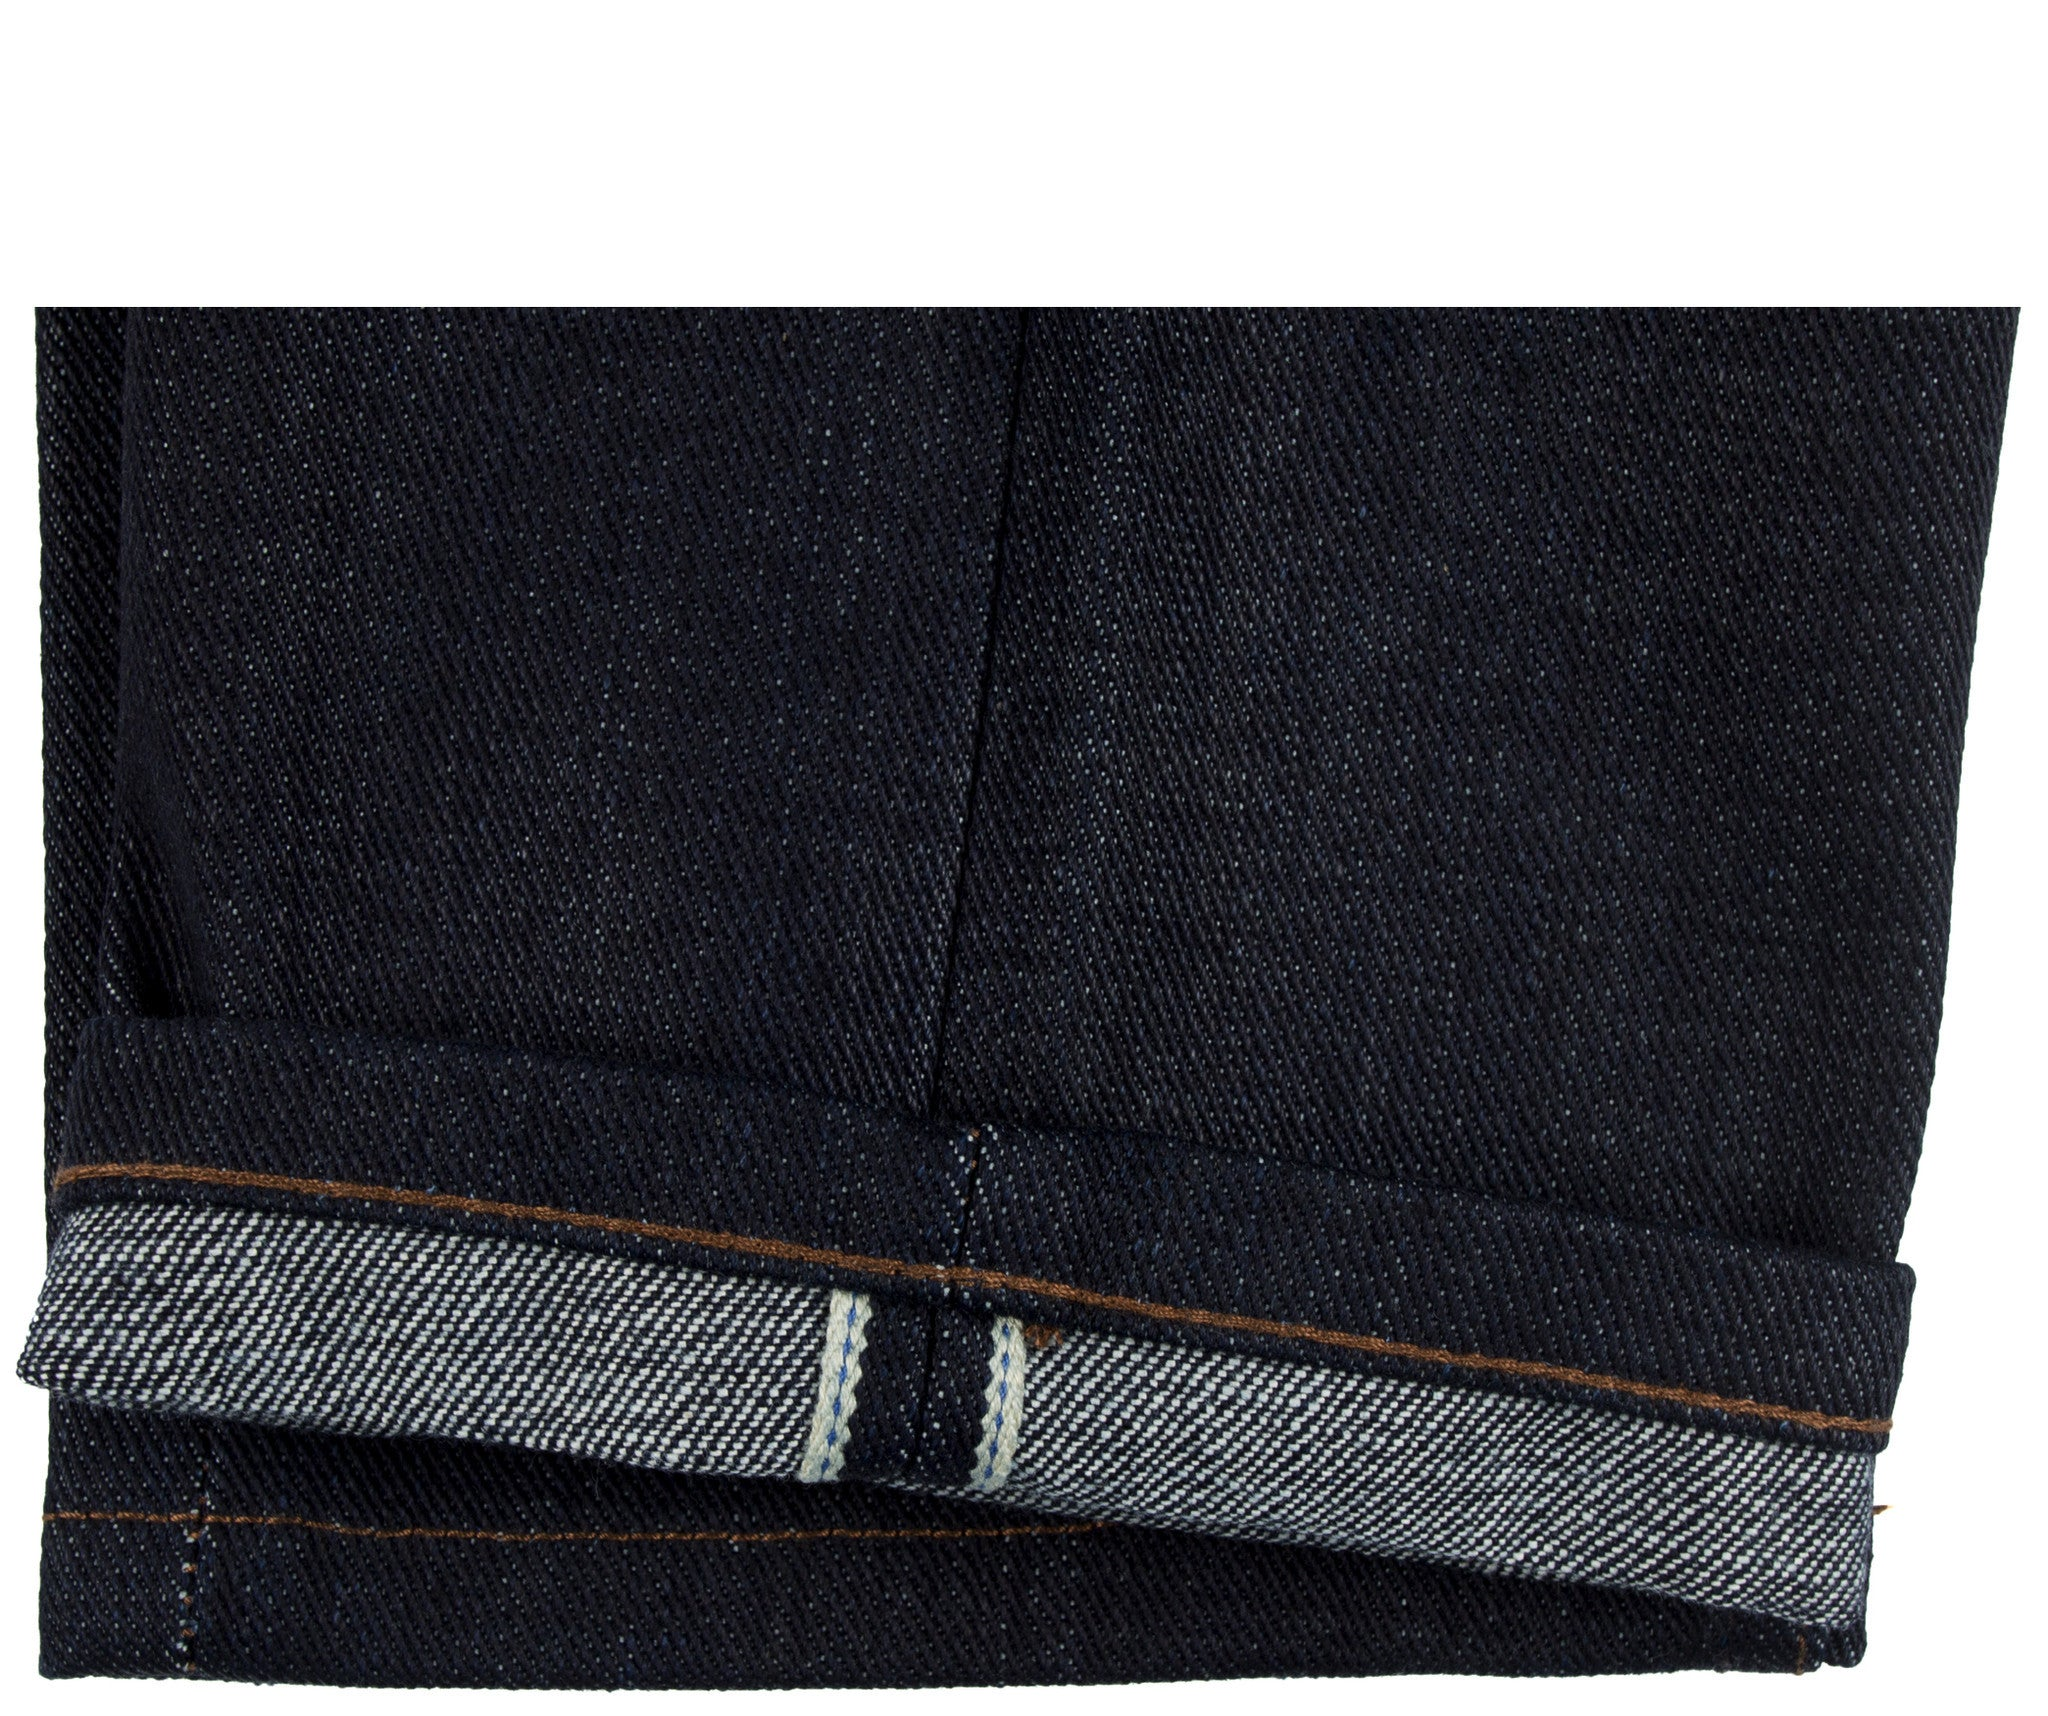 Unbranded Brand- UB221 Tapered Fit Heavyweight 21oz Indigo Selvedge